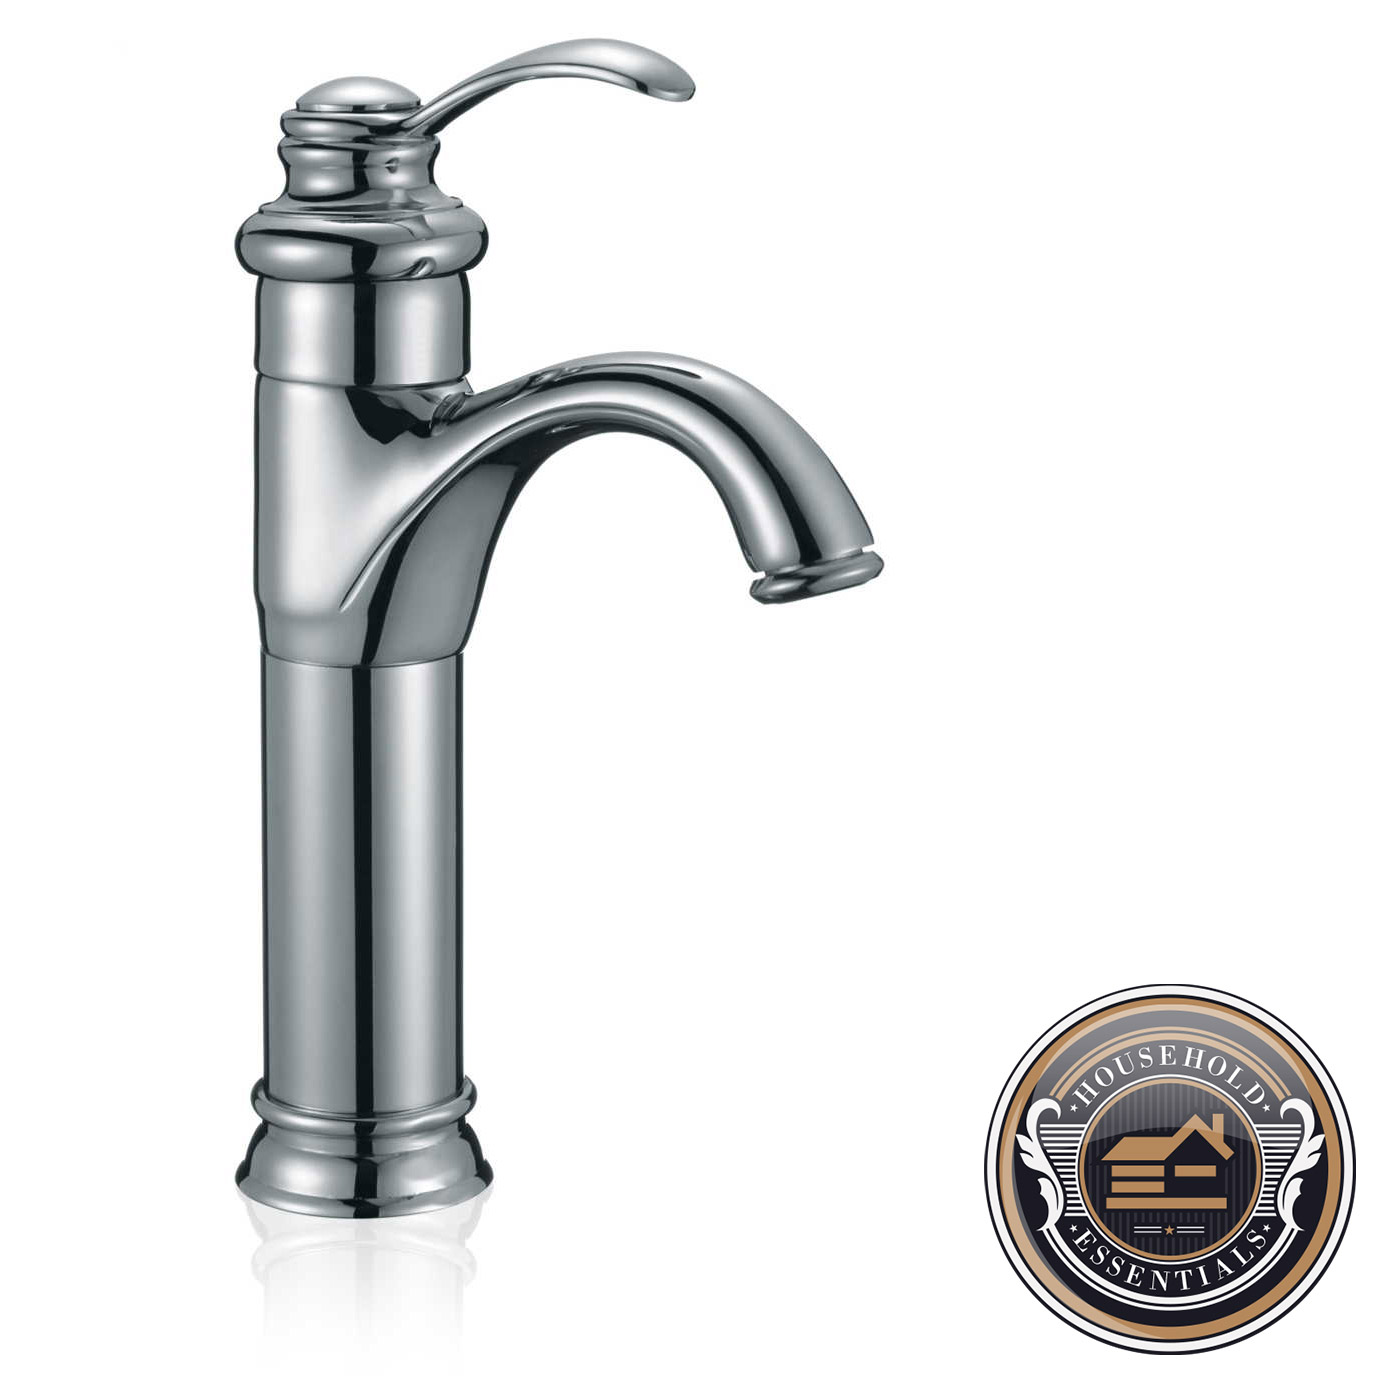 Single Hole Tub Faucet : Details about 11